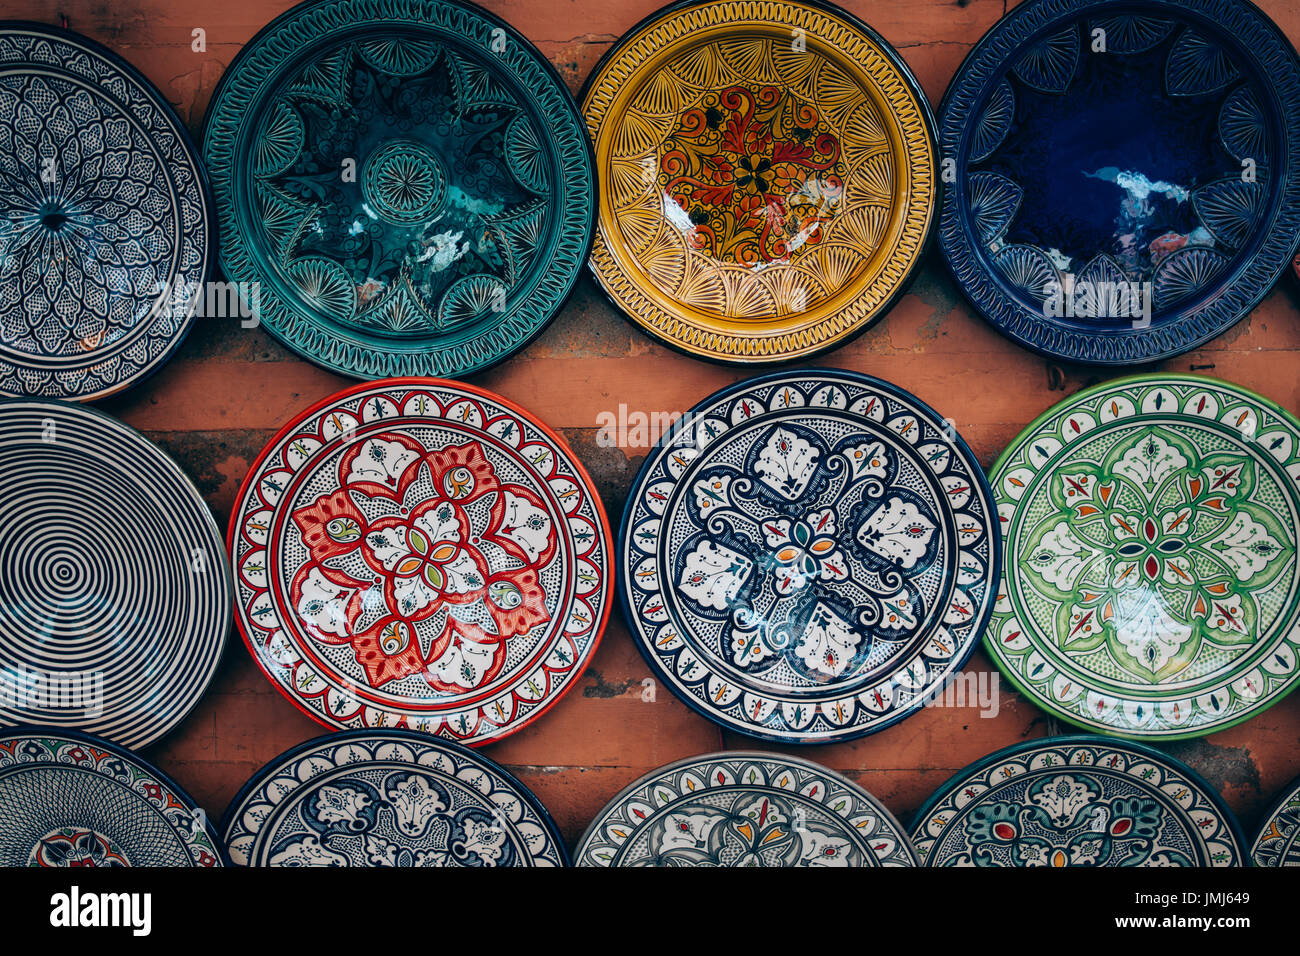 Traditional Moroccan Handmade Plates Hanging On A Wall Stock Photo Alamy